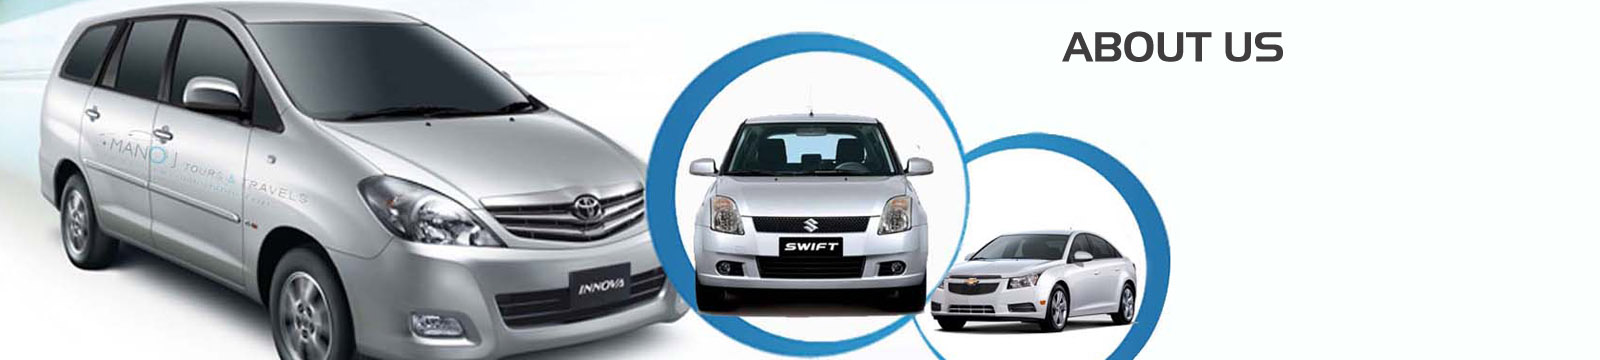 Car Rental & Cab Services in Coimbatore